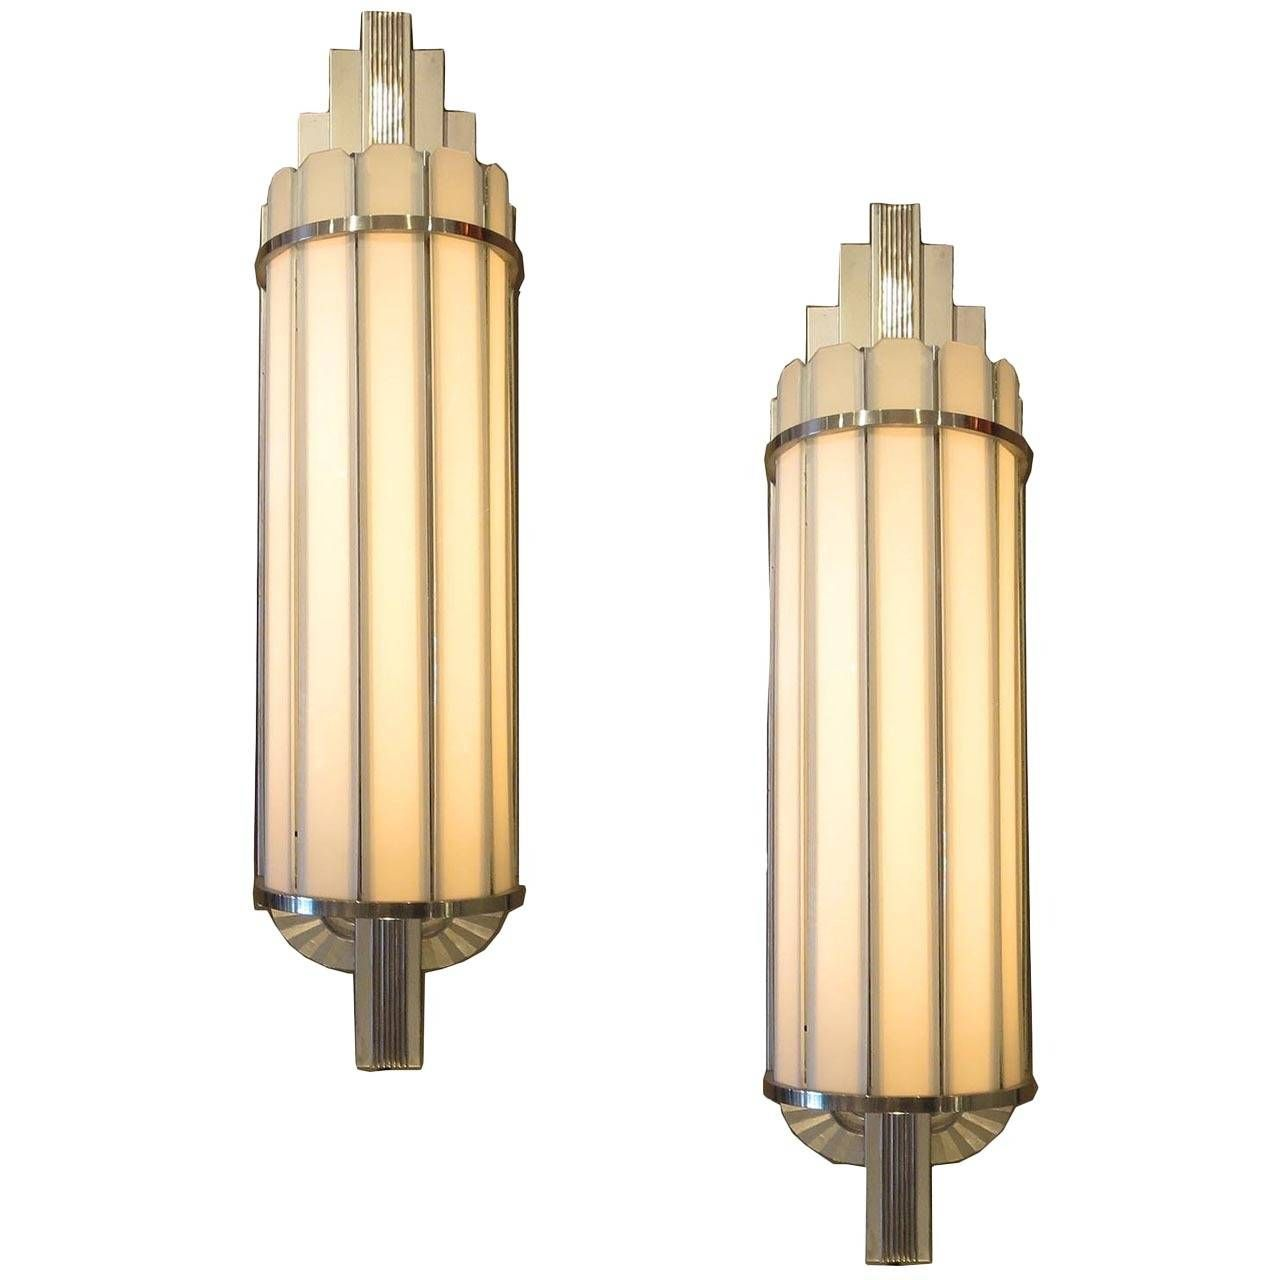 Art Deco Large Theater Wall Sconces | Modern wall, Wall sconces and ...